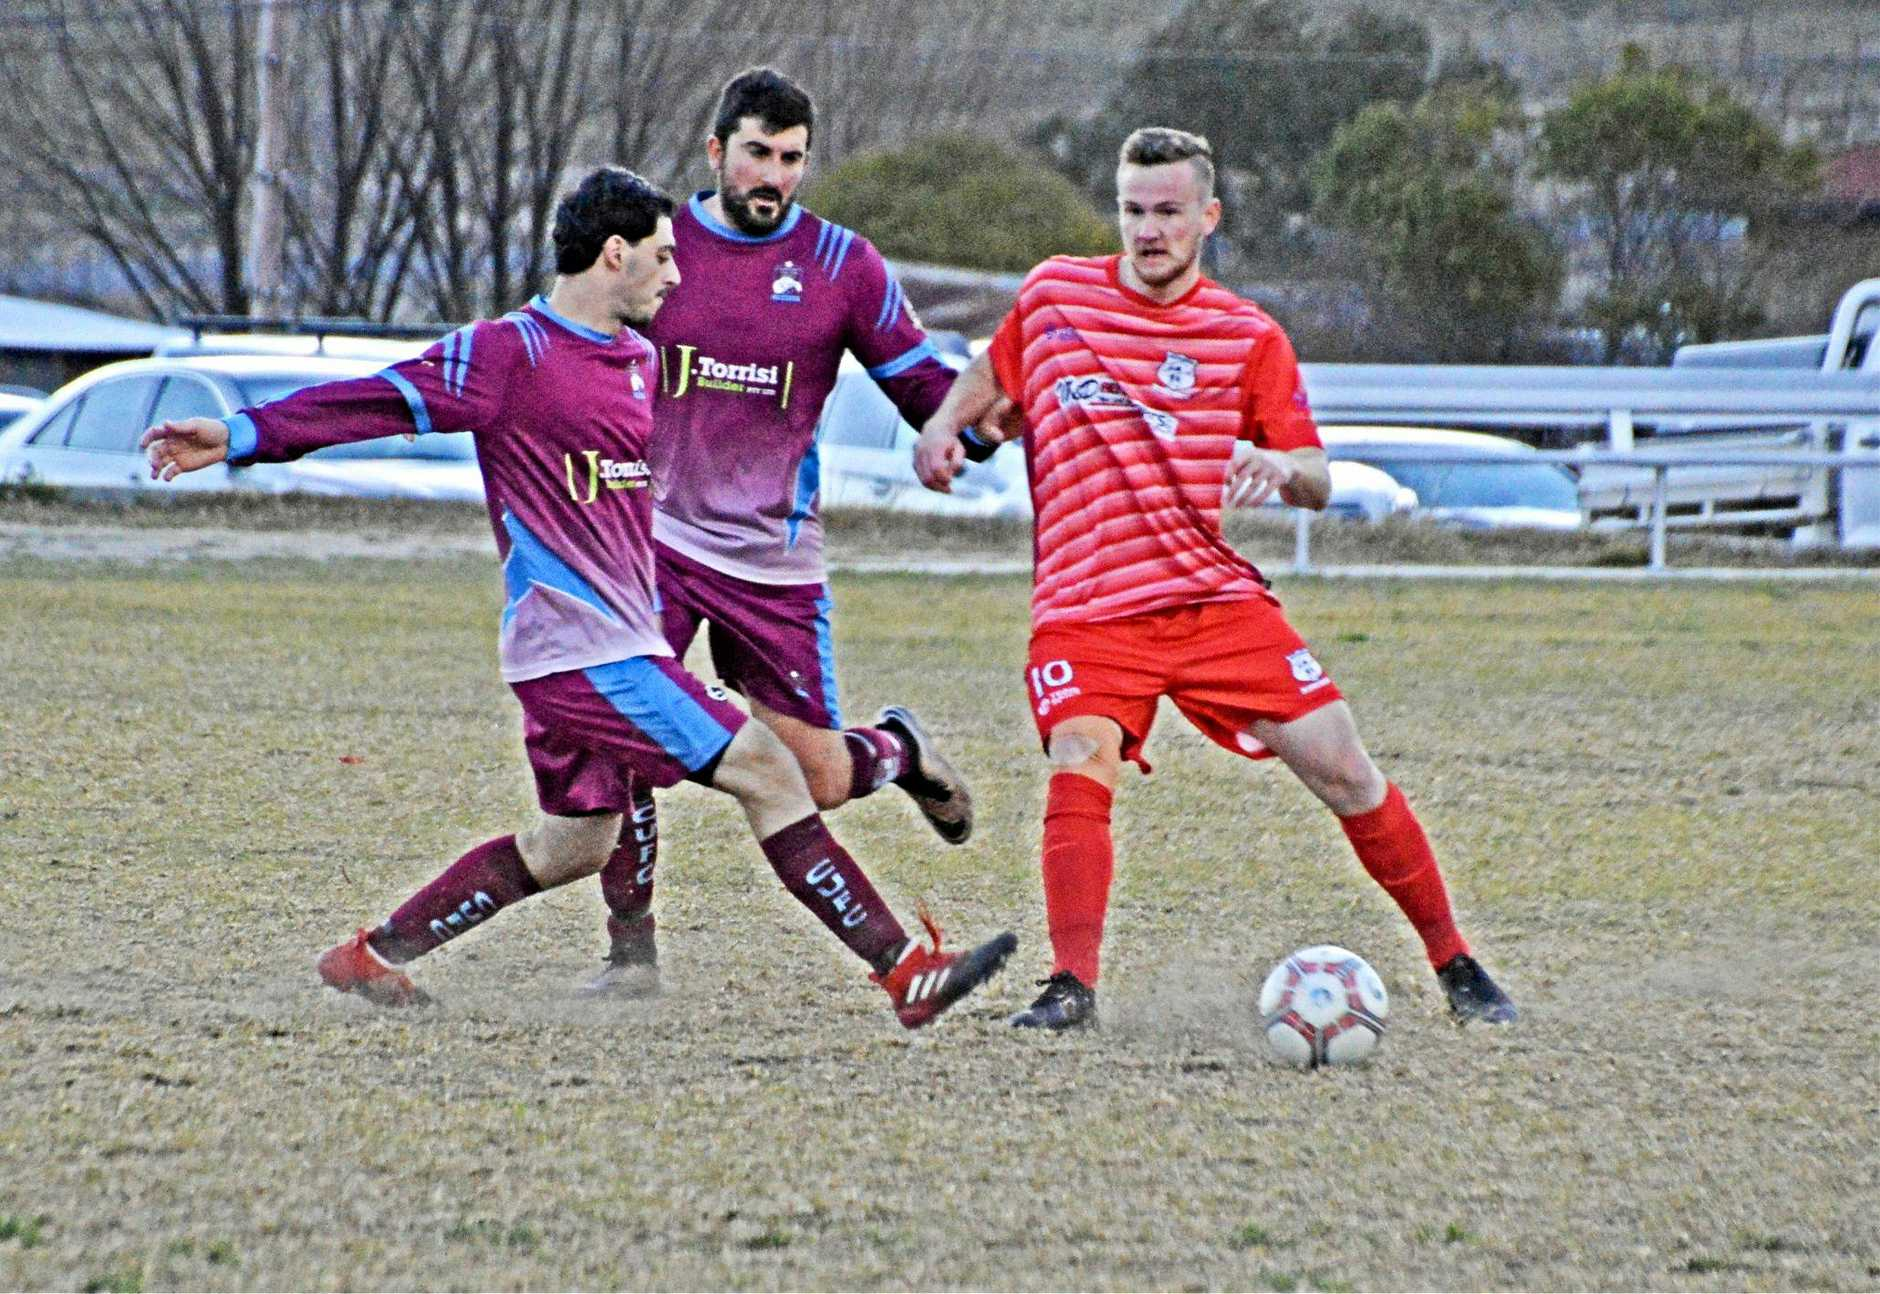 GET STUCK IN: Carlton's Michael Vaticano and Johnnie Torrisi try win the ball back off of Ballandean's Ben Rametta in the sides Saturday clash.